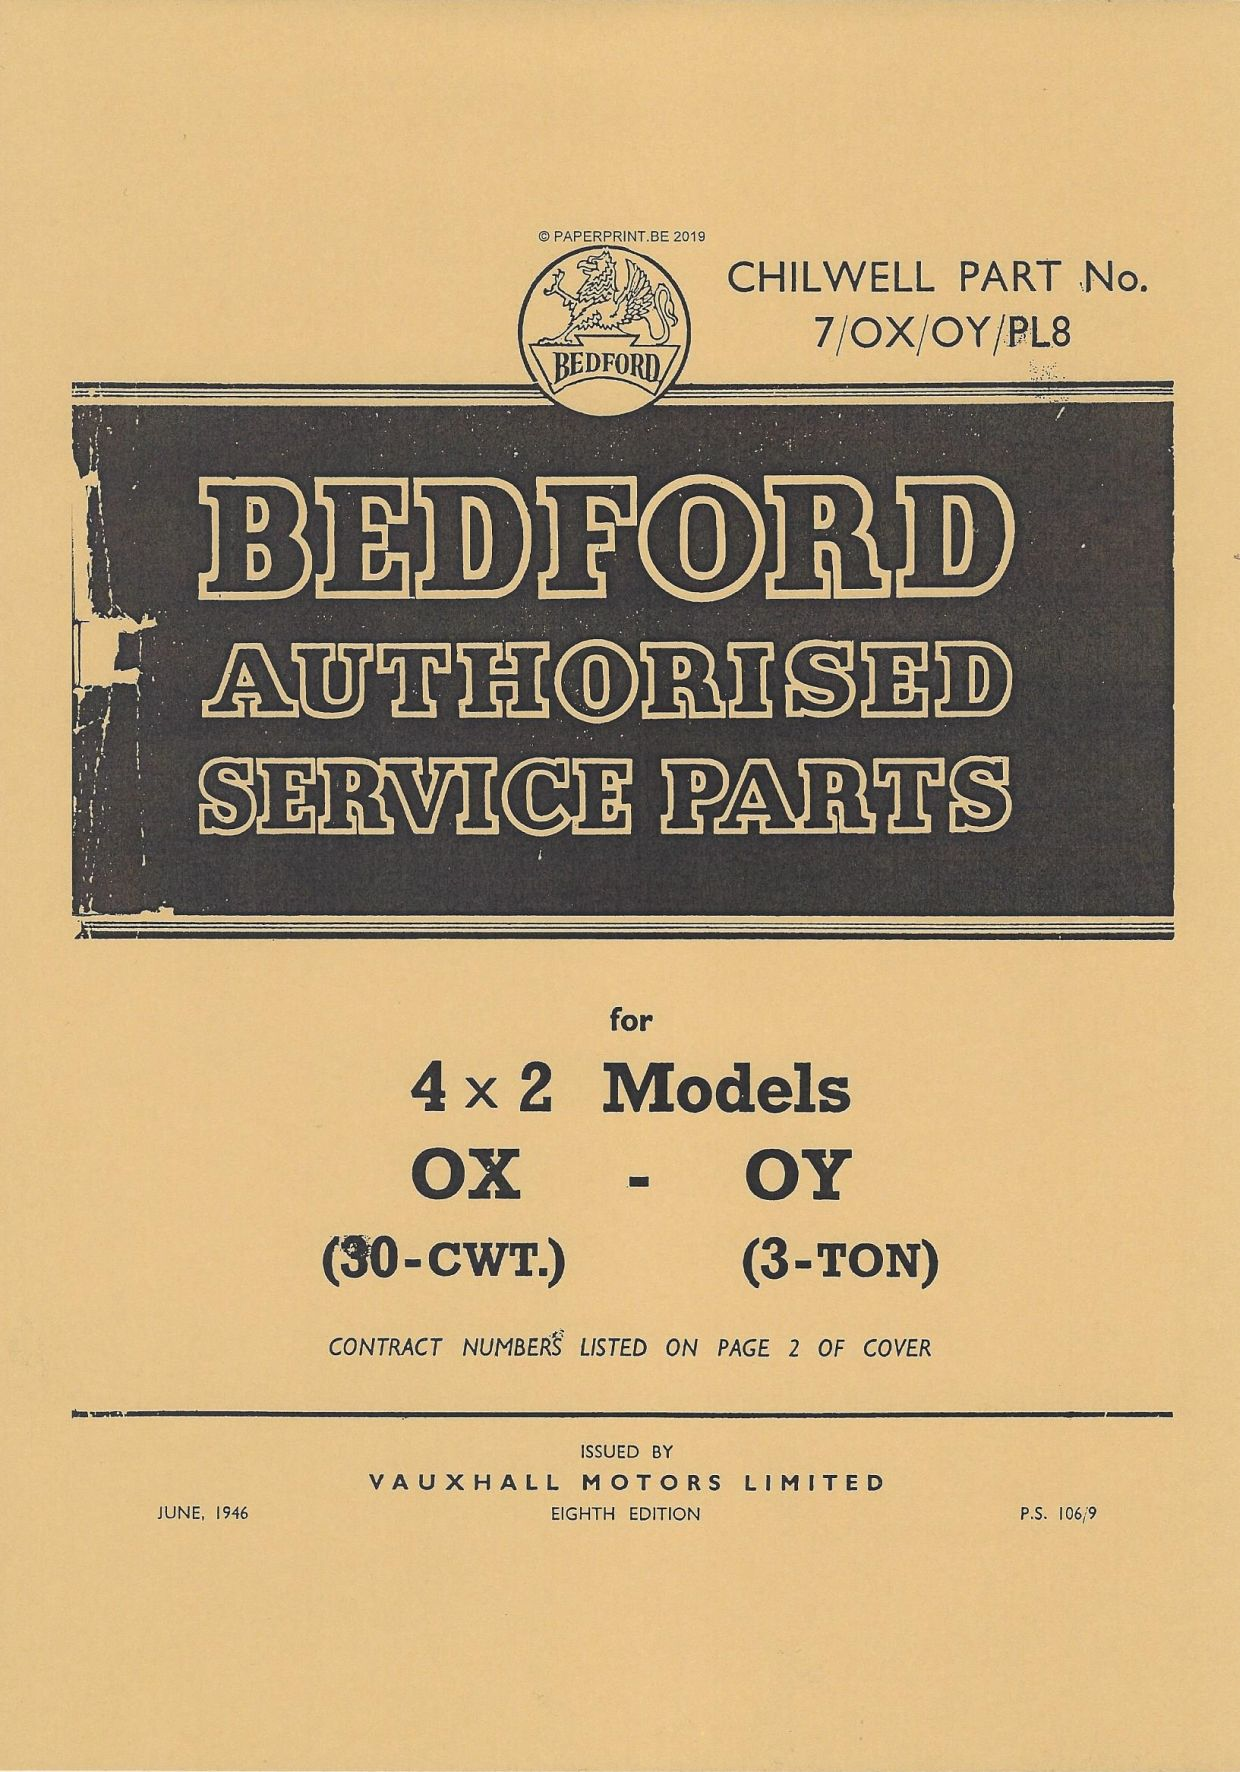 BEDFORD OX OY AUTHORISED SERVICE PARTS